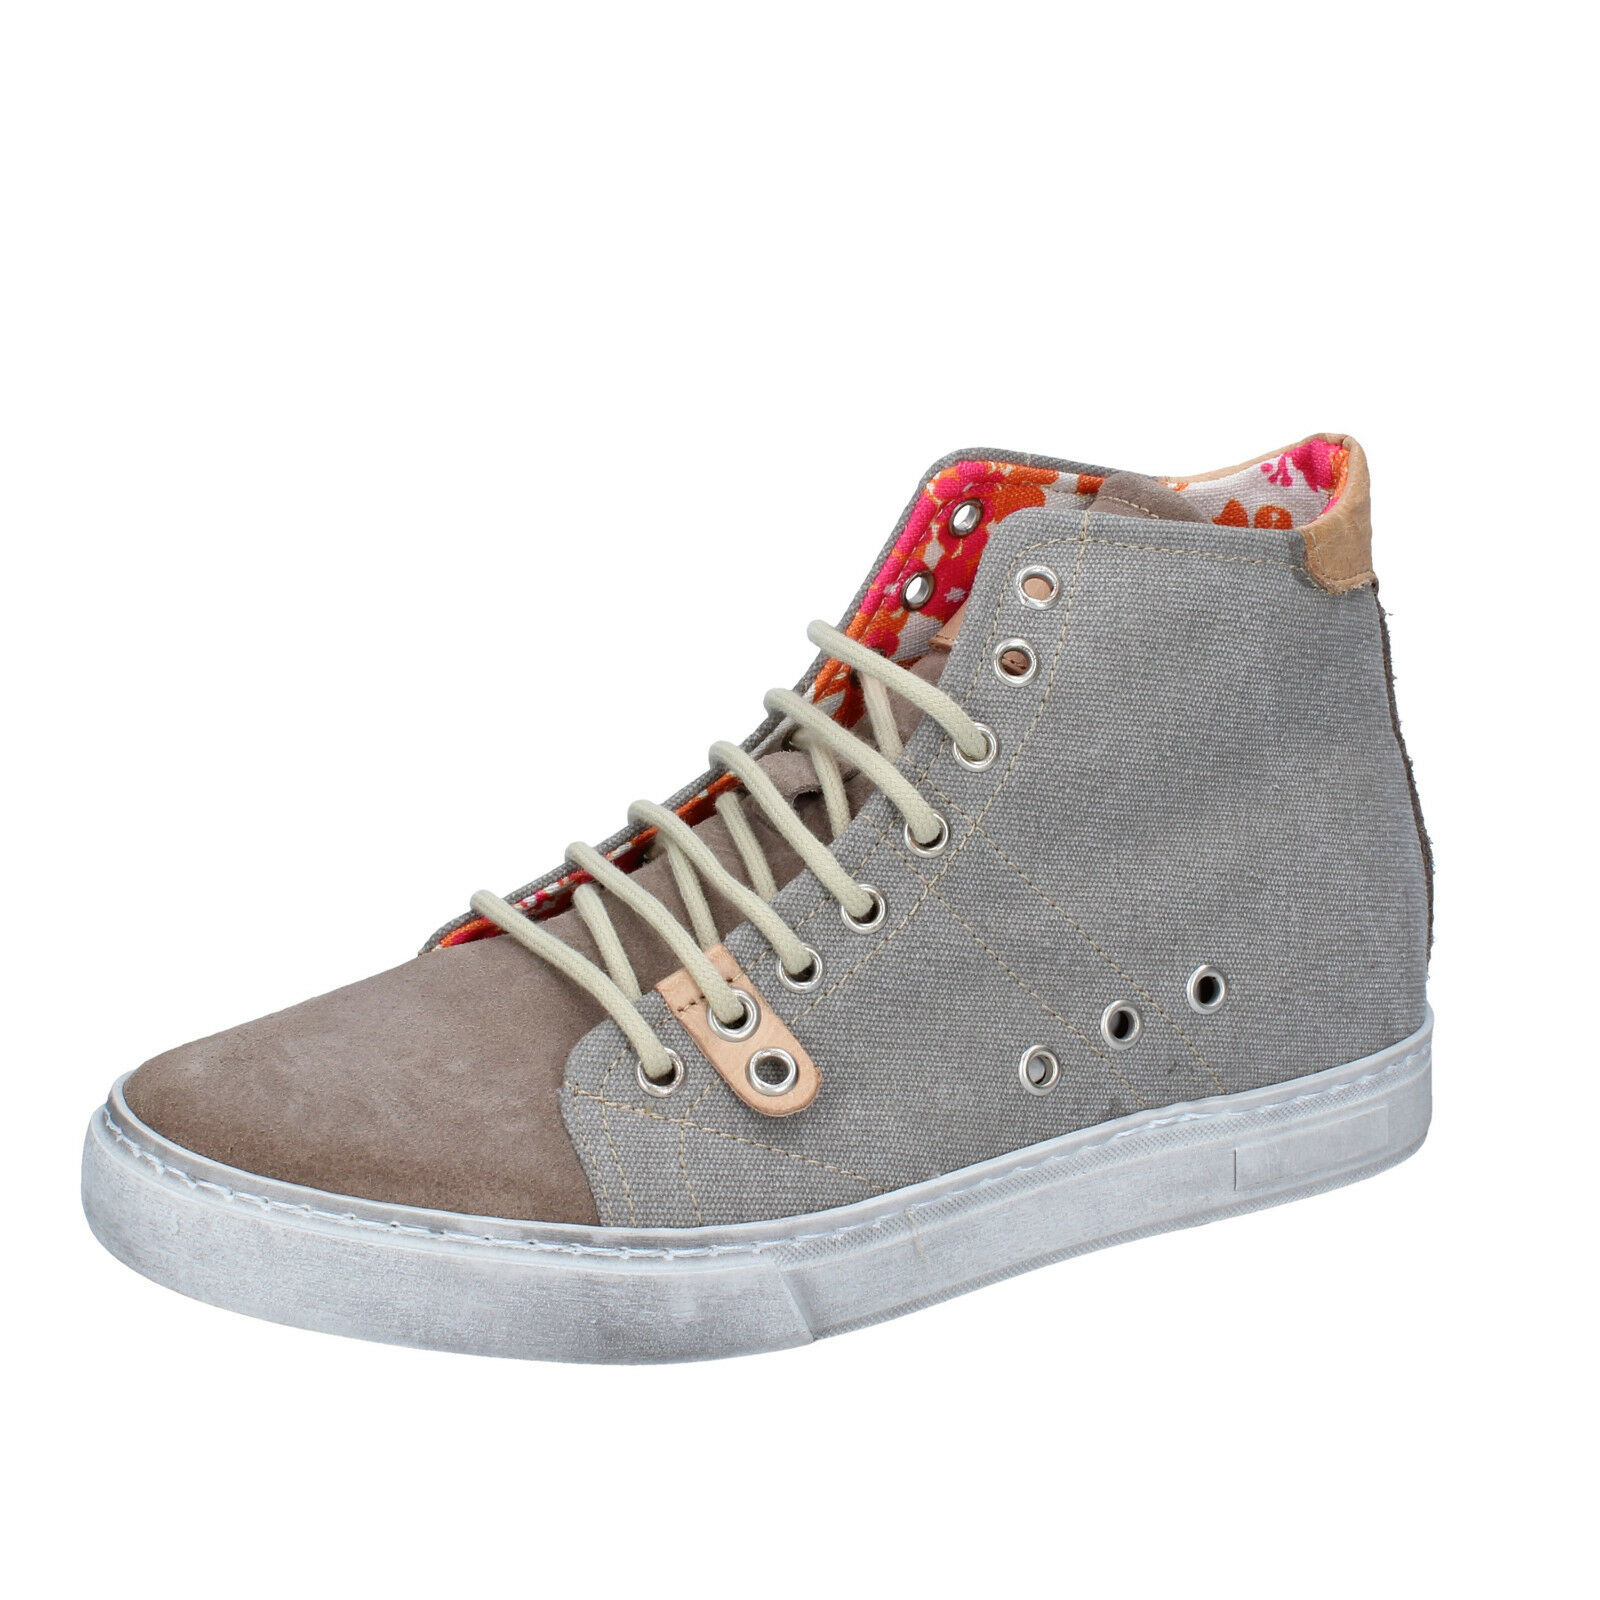 Mens shoes NYON BY CORAF 7 (EU 41) sneakers beige textile suede BY86-C